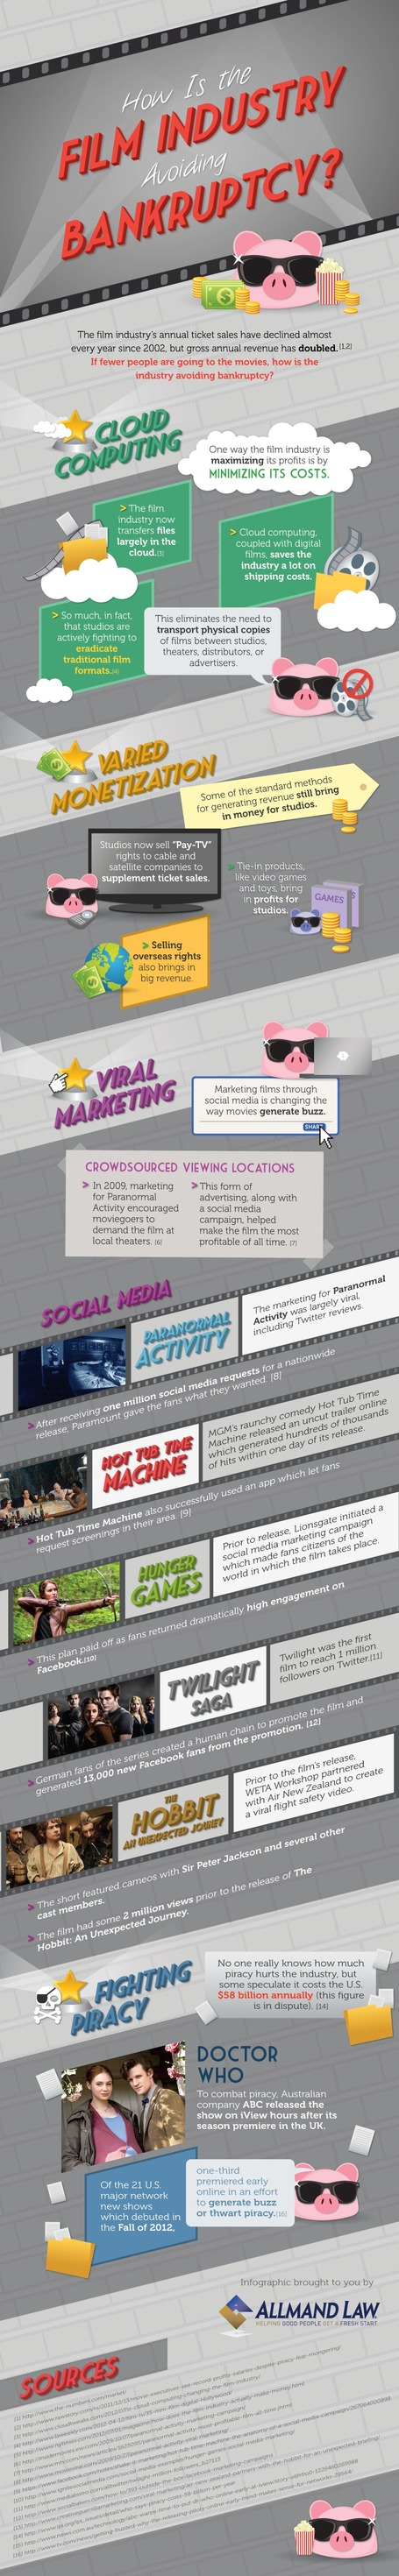 How Social Media and Viral Marketing are Saving the Film Industry [INFOGRAPHIC] | 3D animation transmedia | Scoop.it